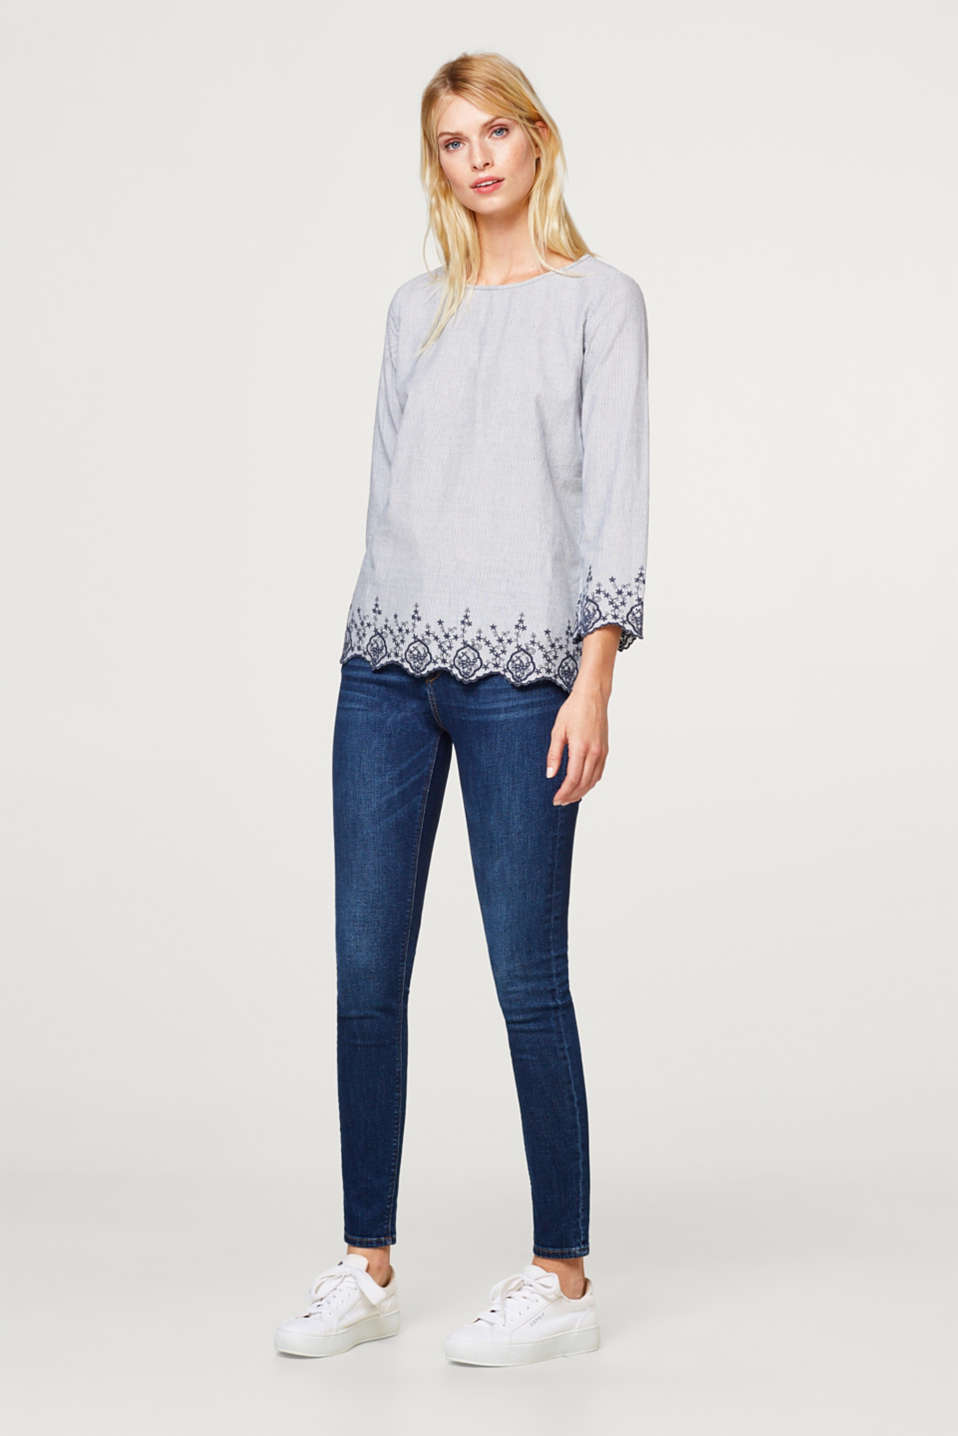 Striped blouse with a scalloped hem and embroidery